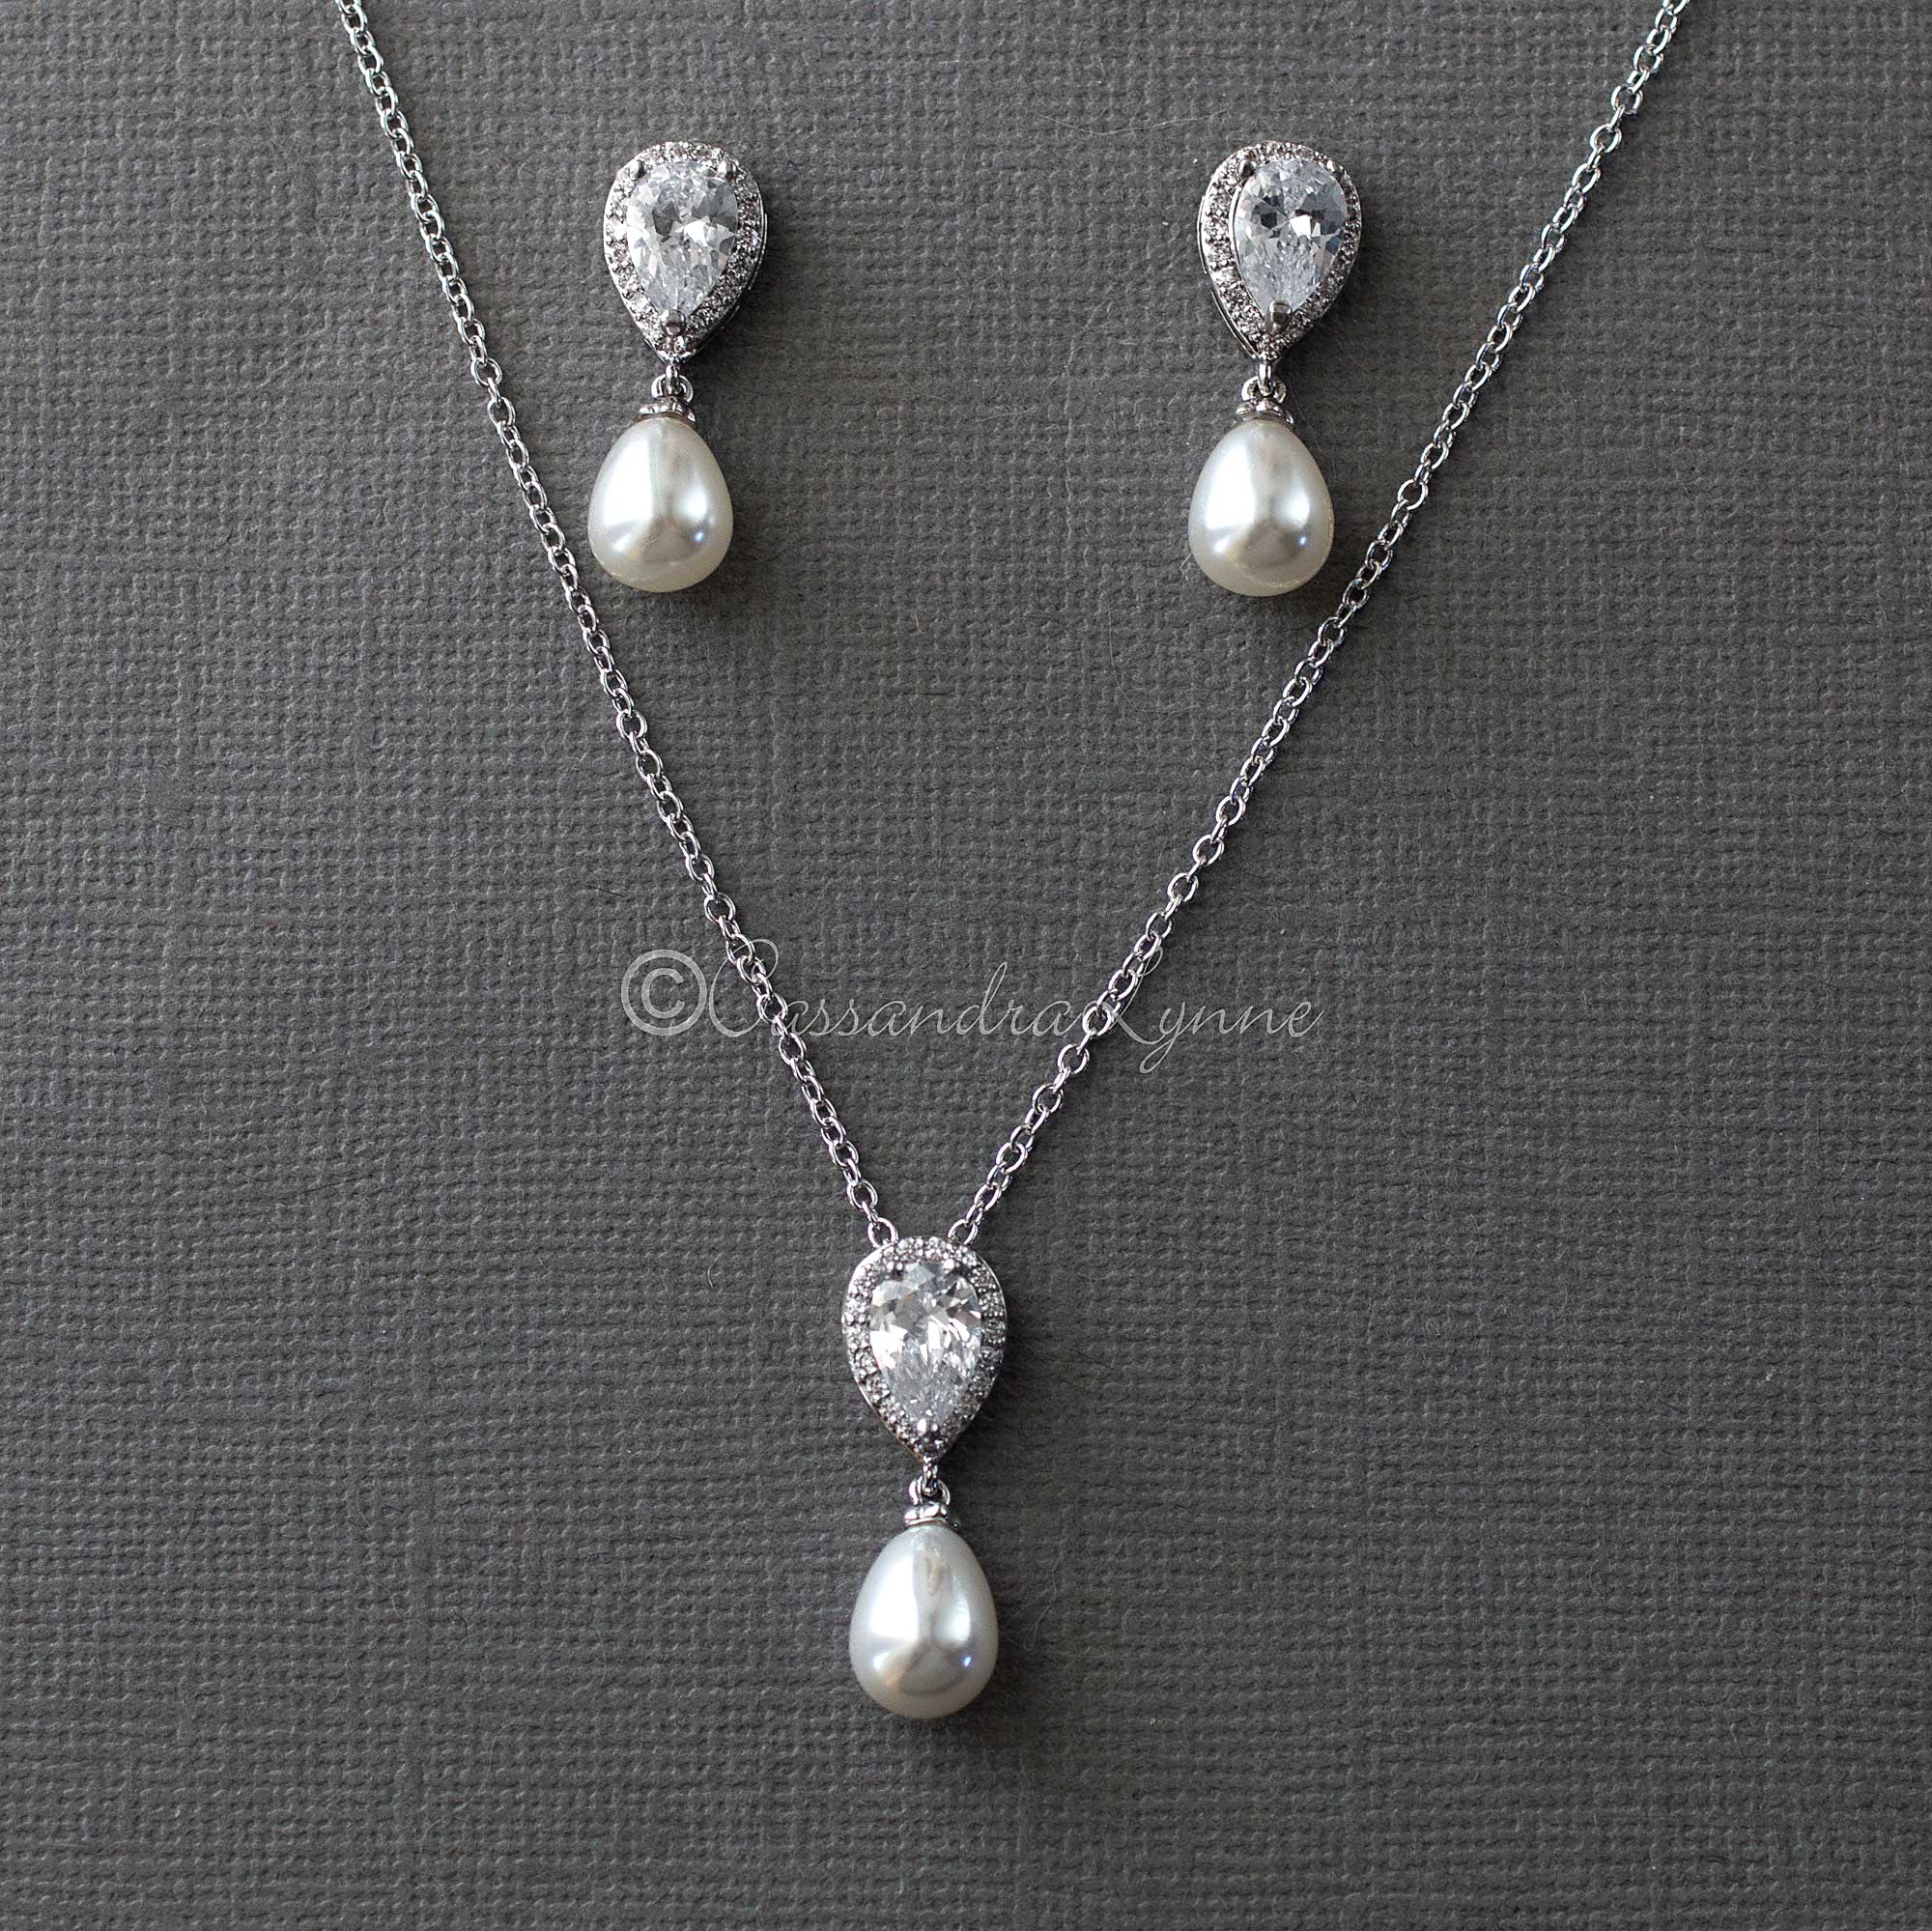 Bridal Necklace Set of Teardrop Pearls and CZ